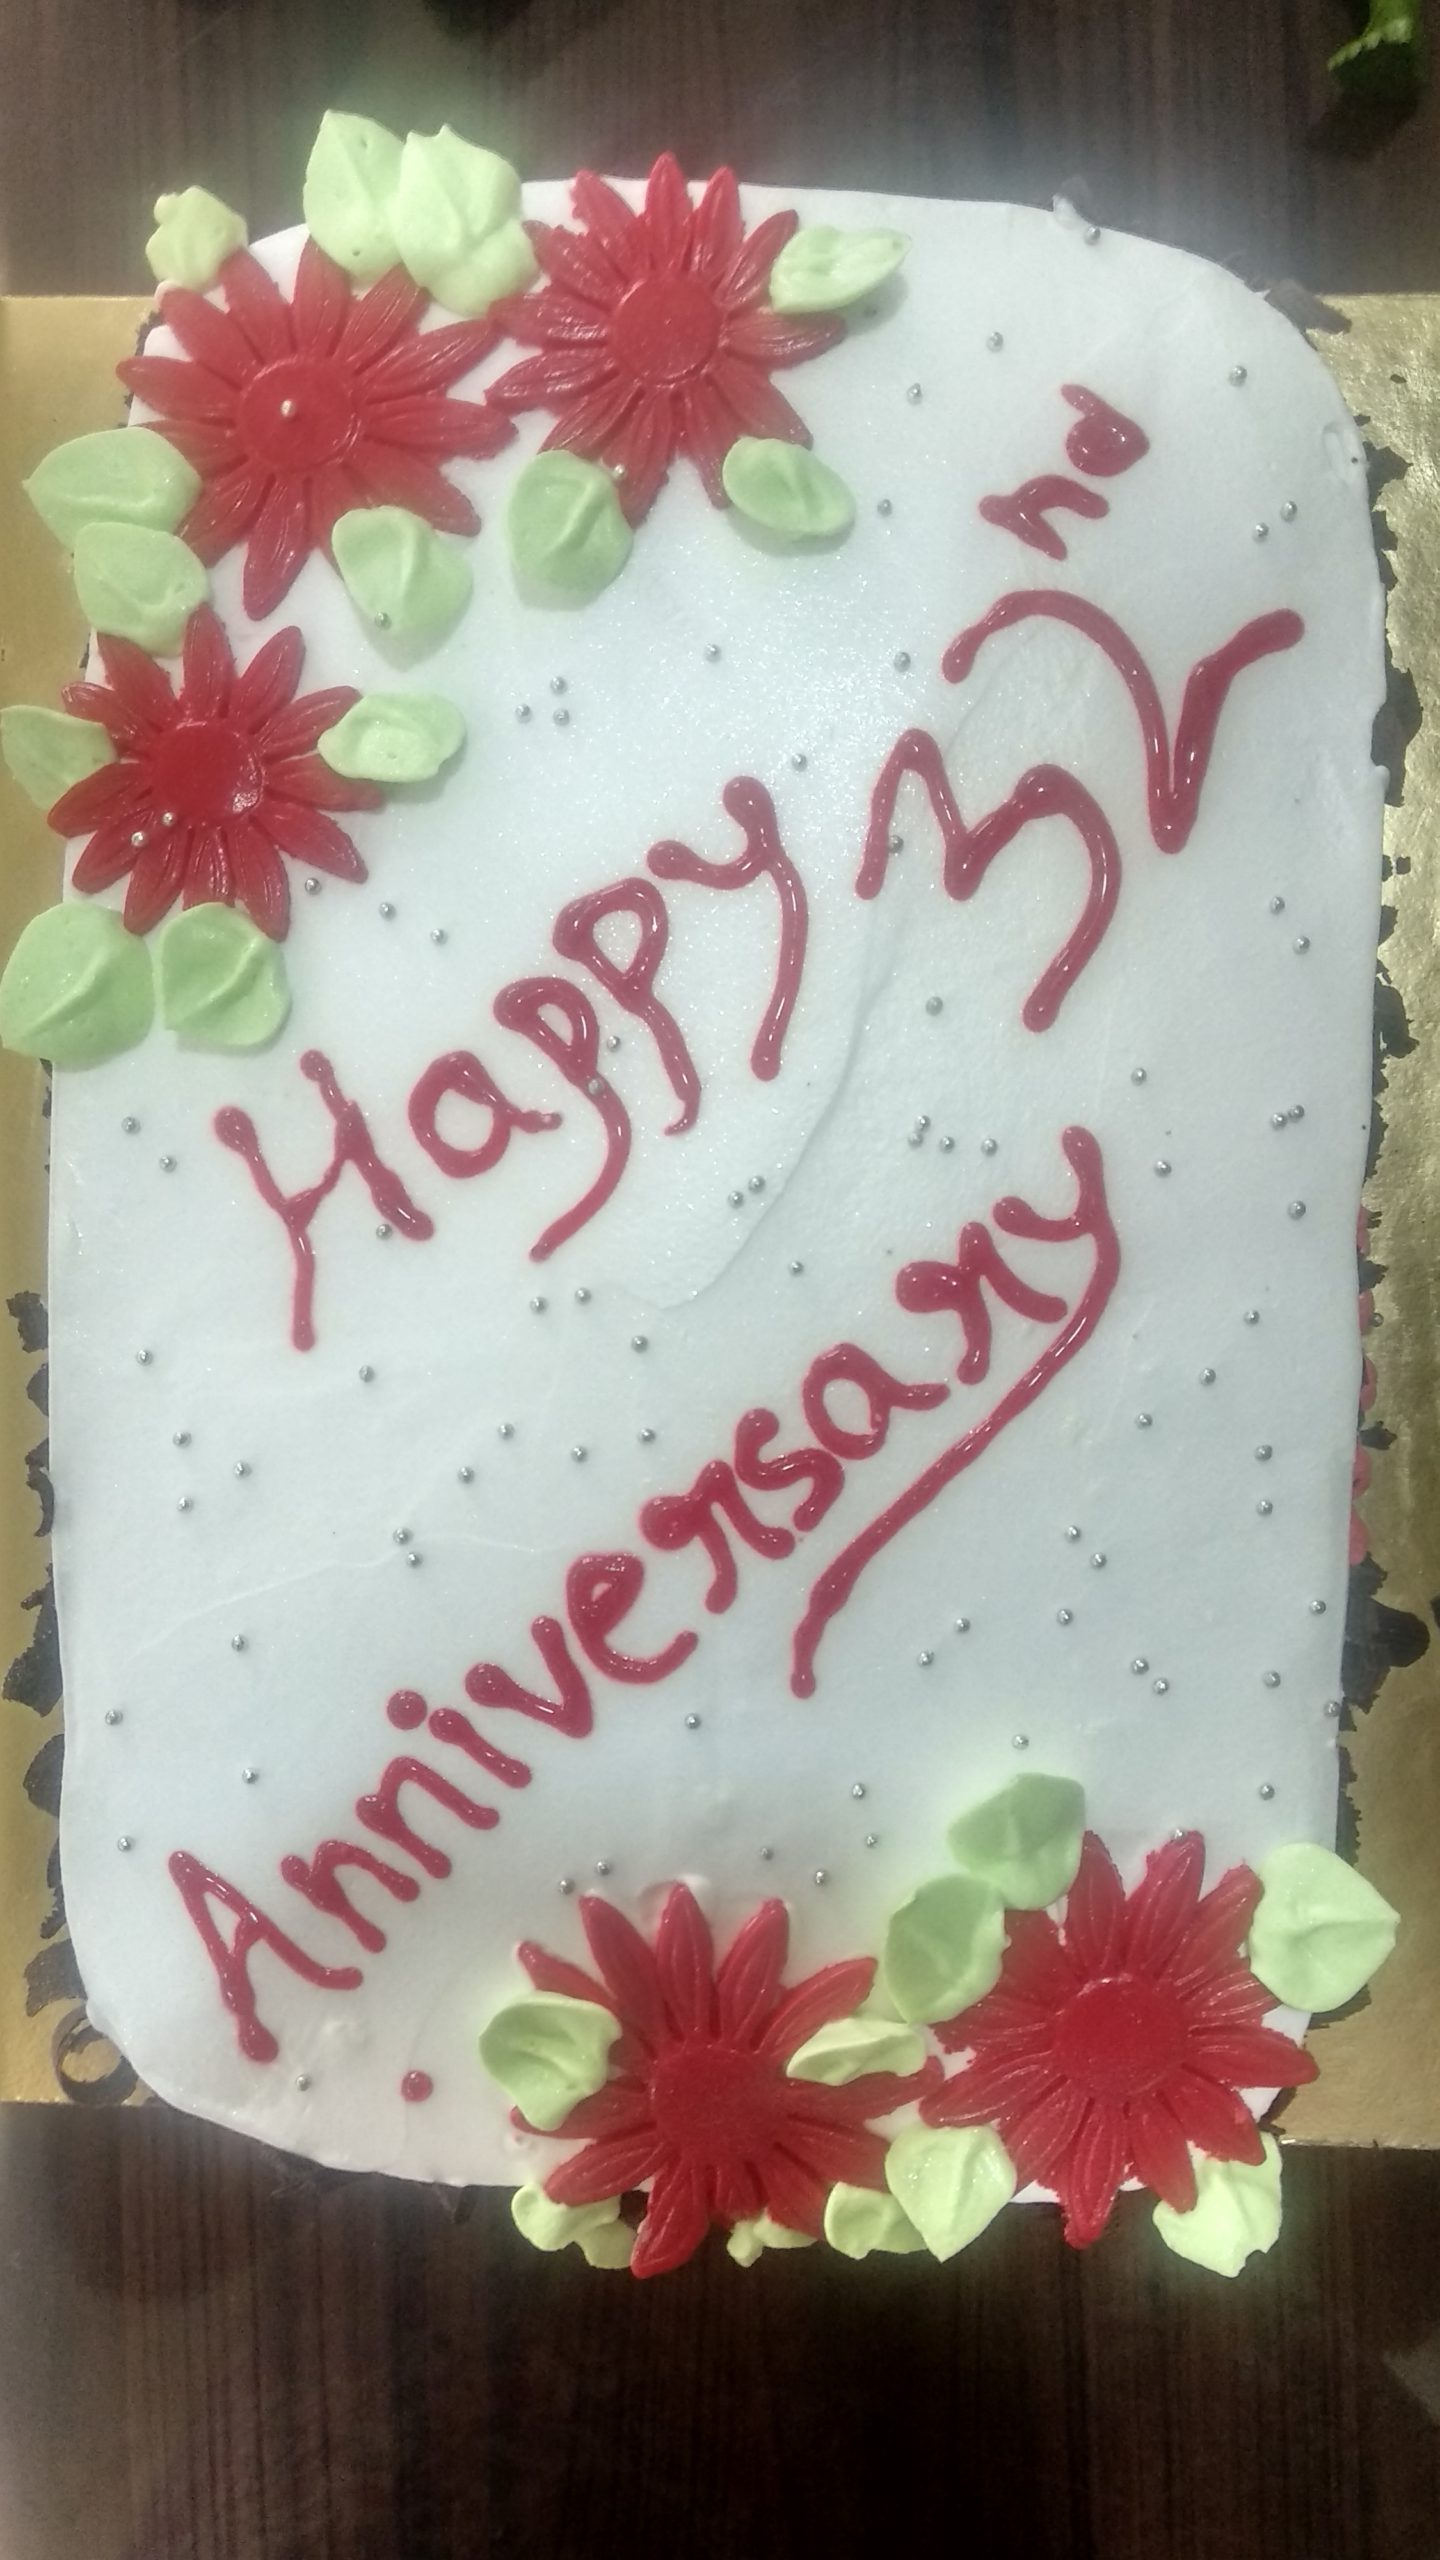 Anniversary Cake(chocolate and pineapple) Designs, Images, Price Near Me